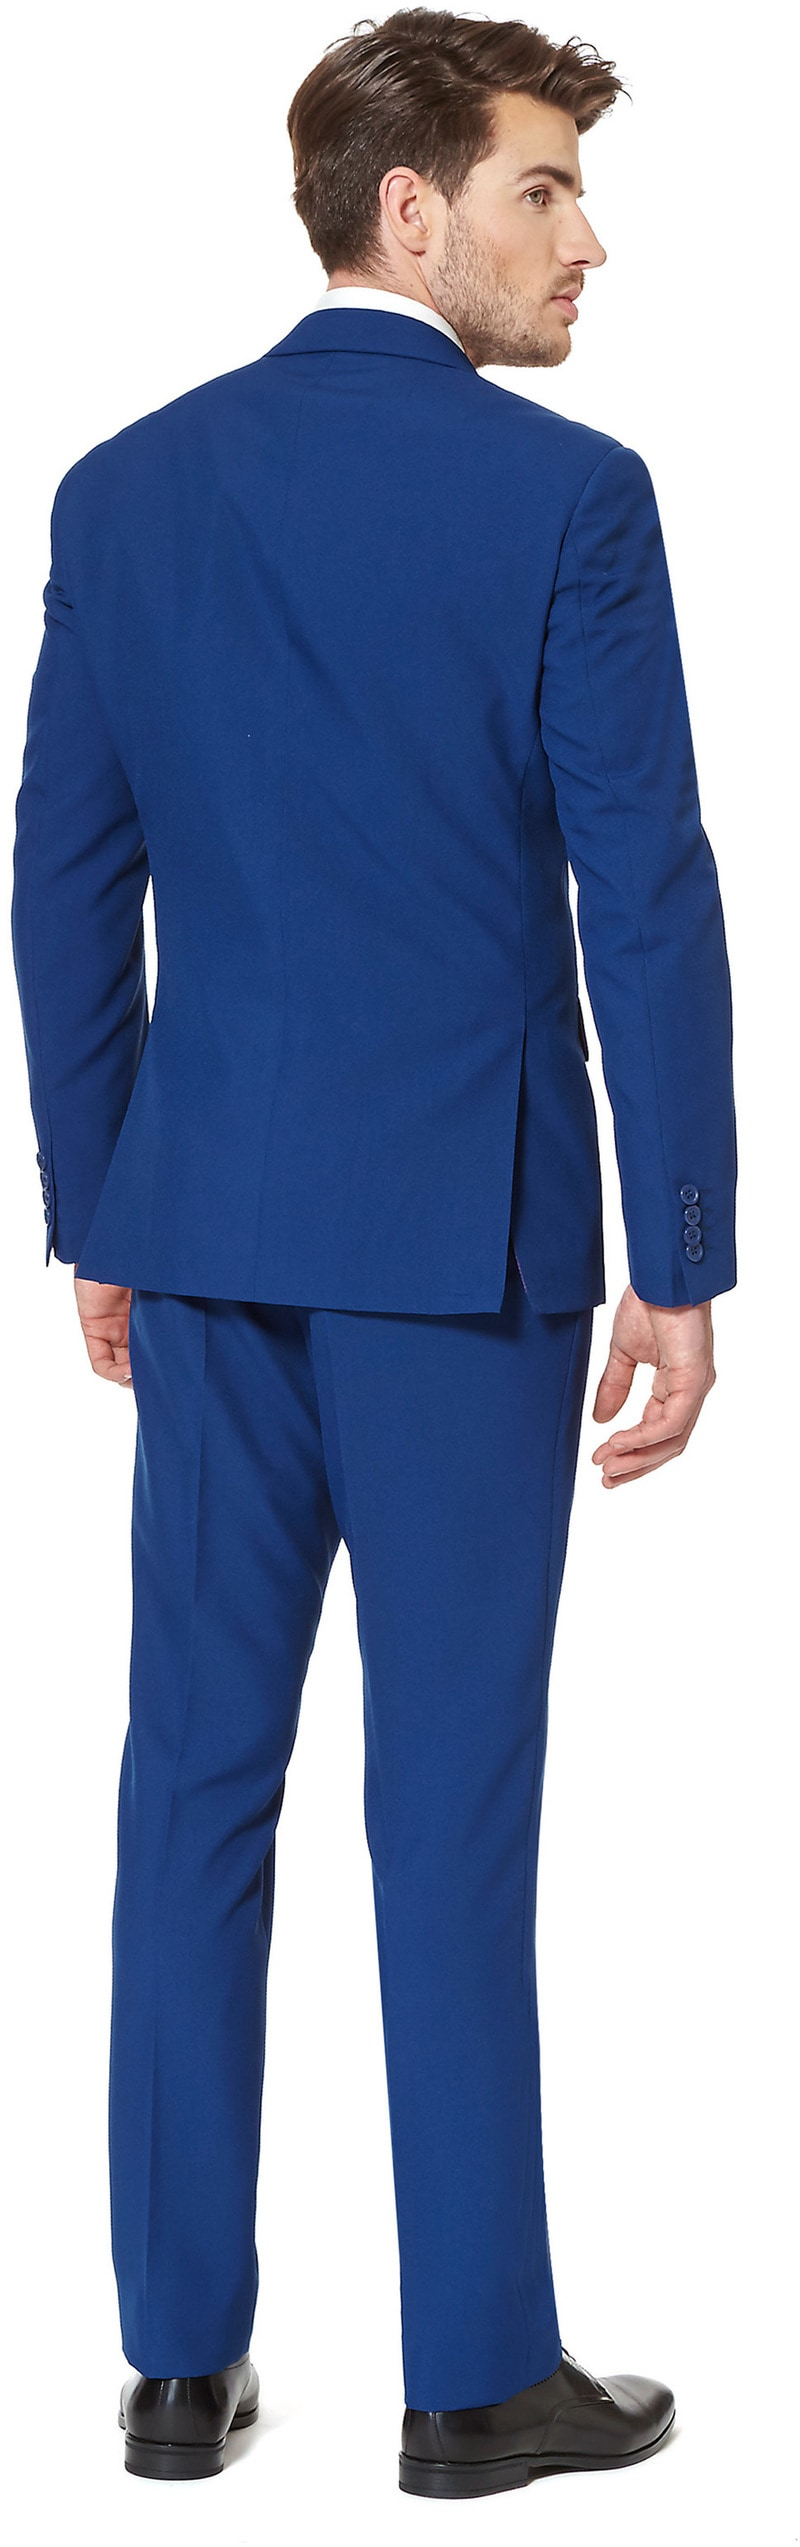 OppoSuits Navy Royale Suit photo 1